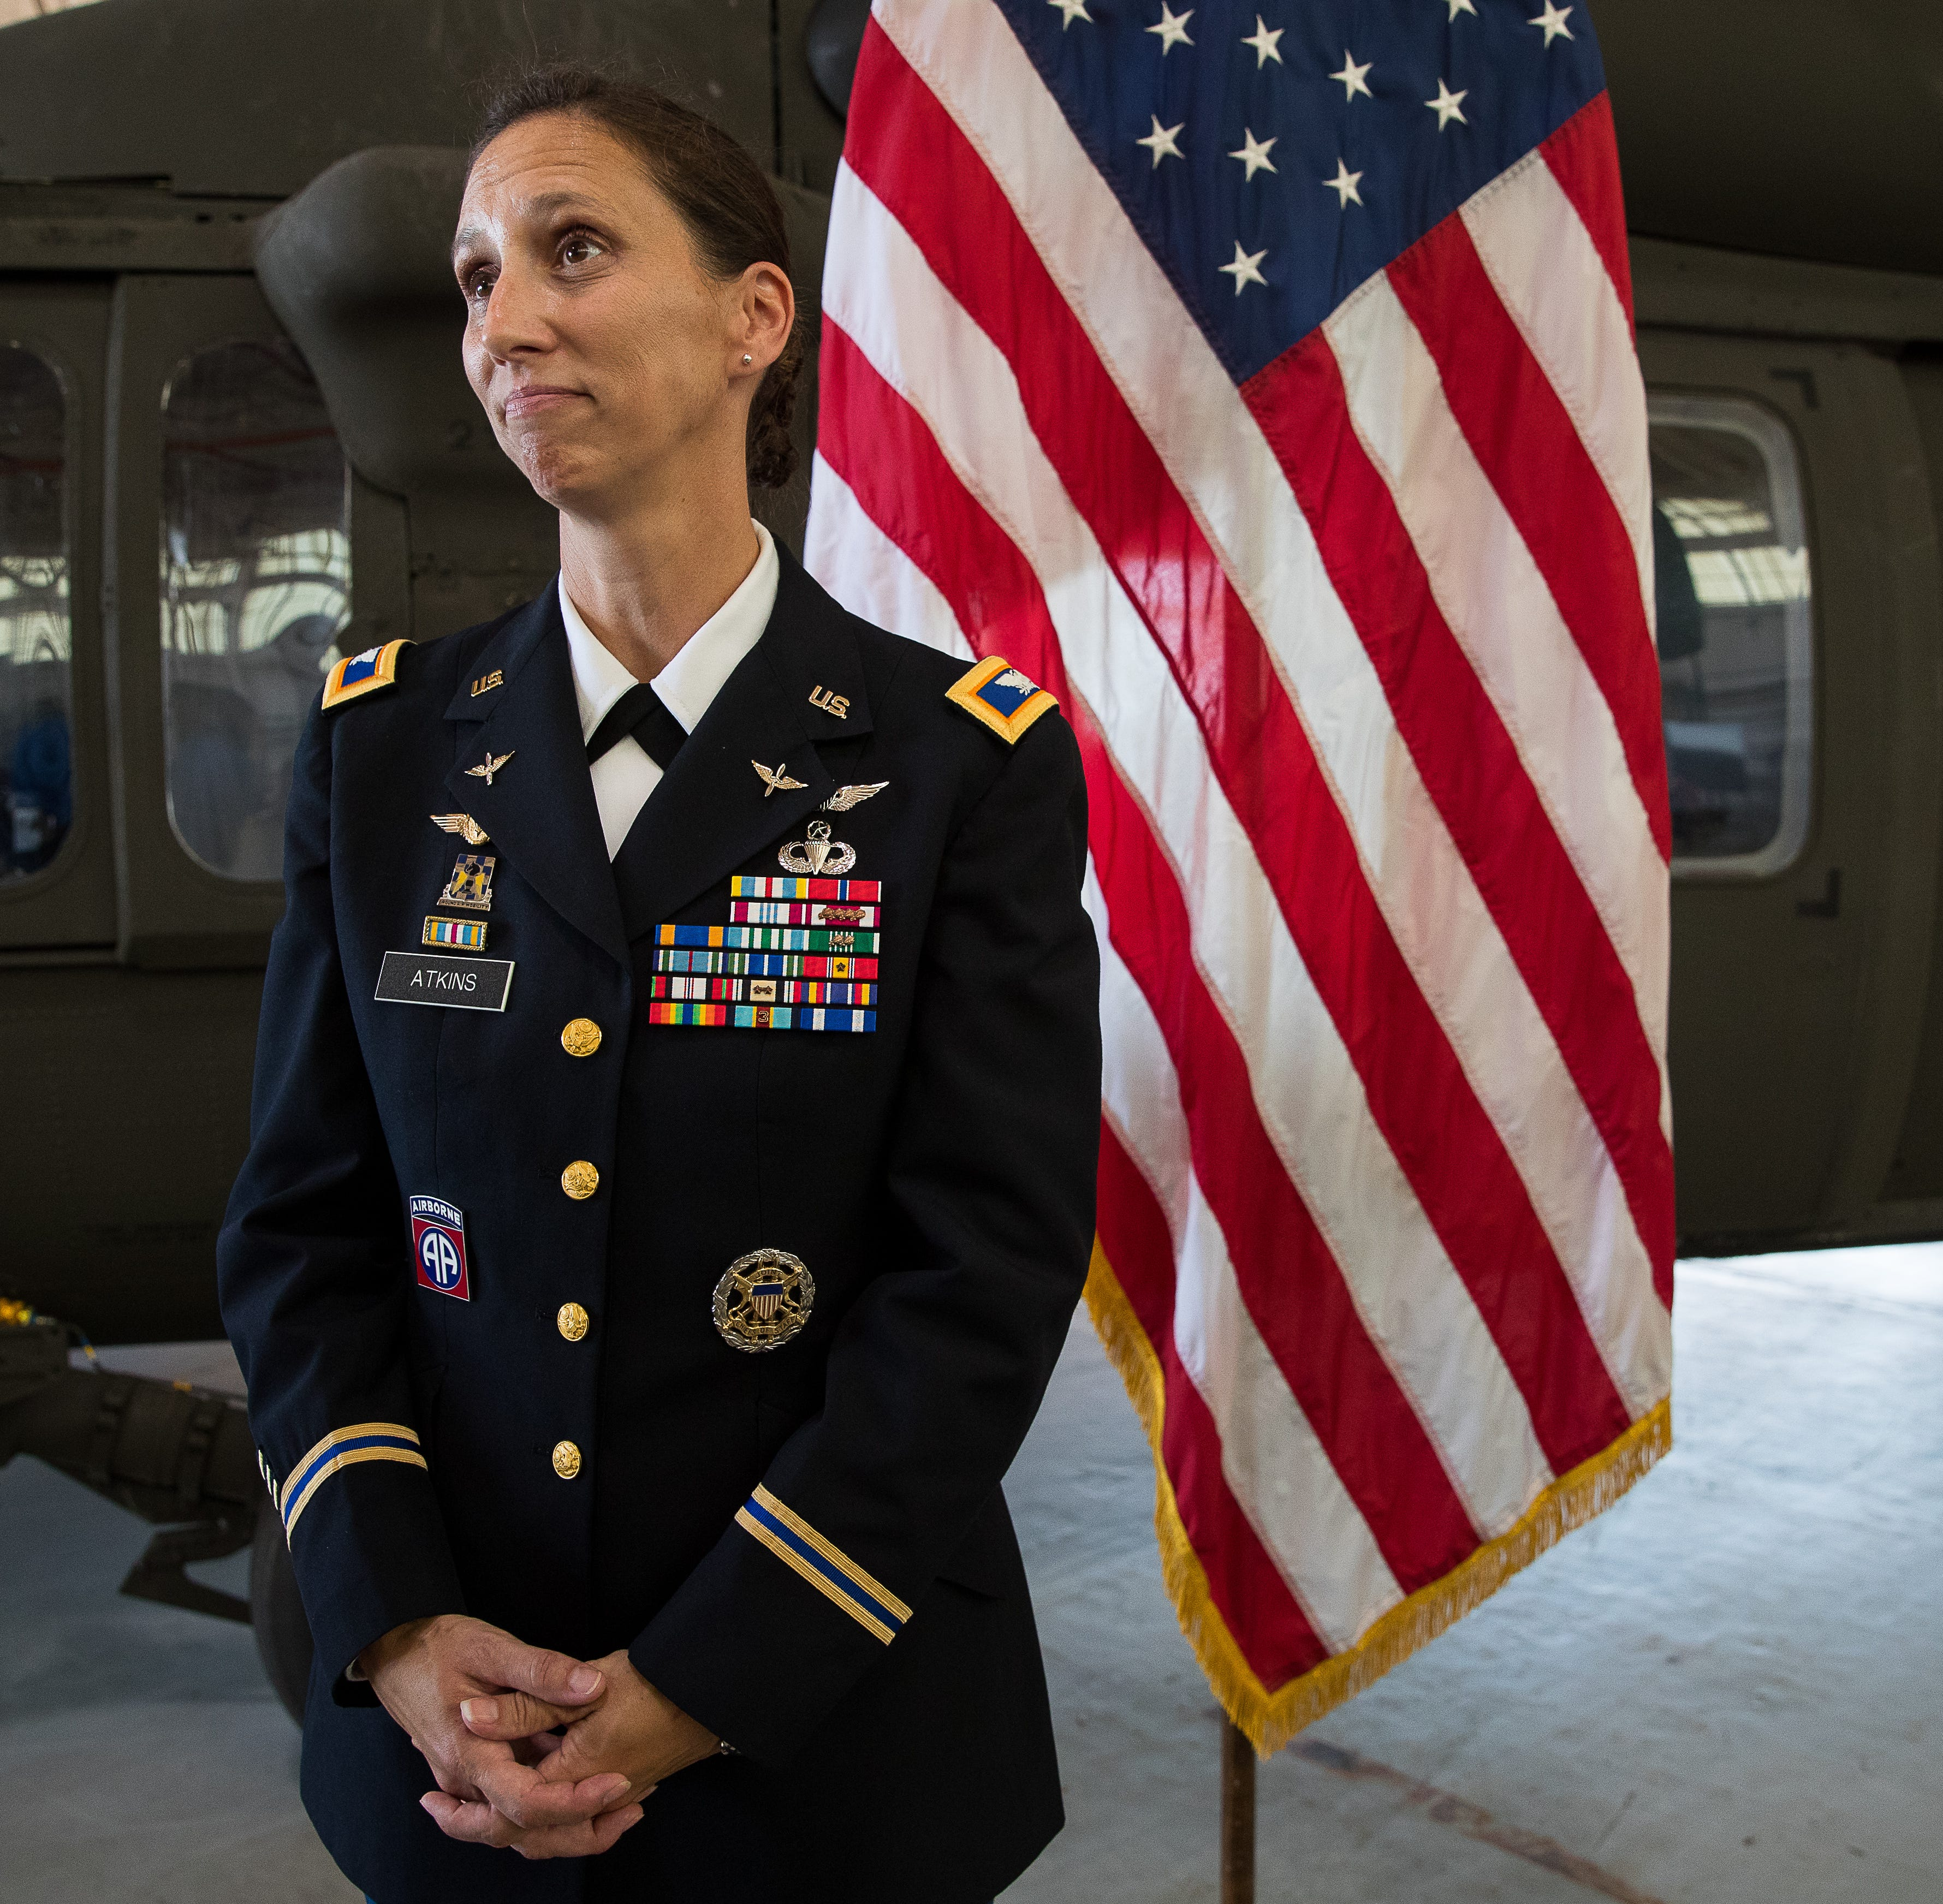 Col. Gail Atkins becomes first woman to lead Corpus Christi Army Depot